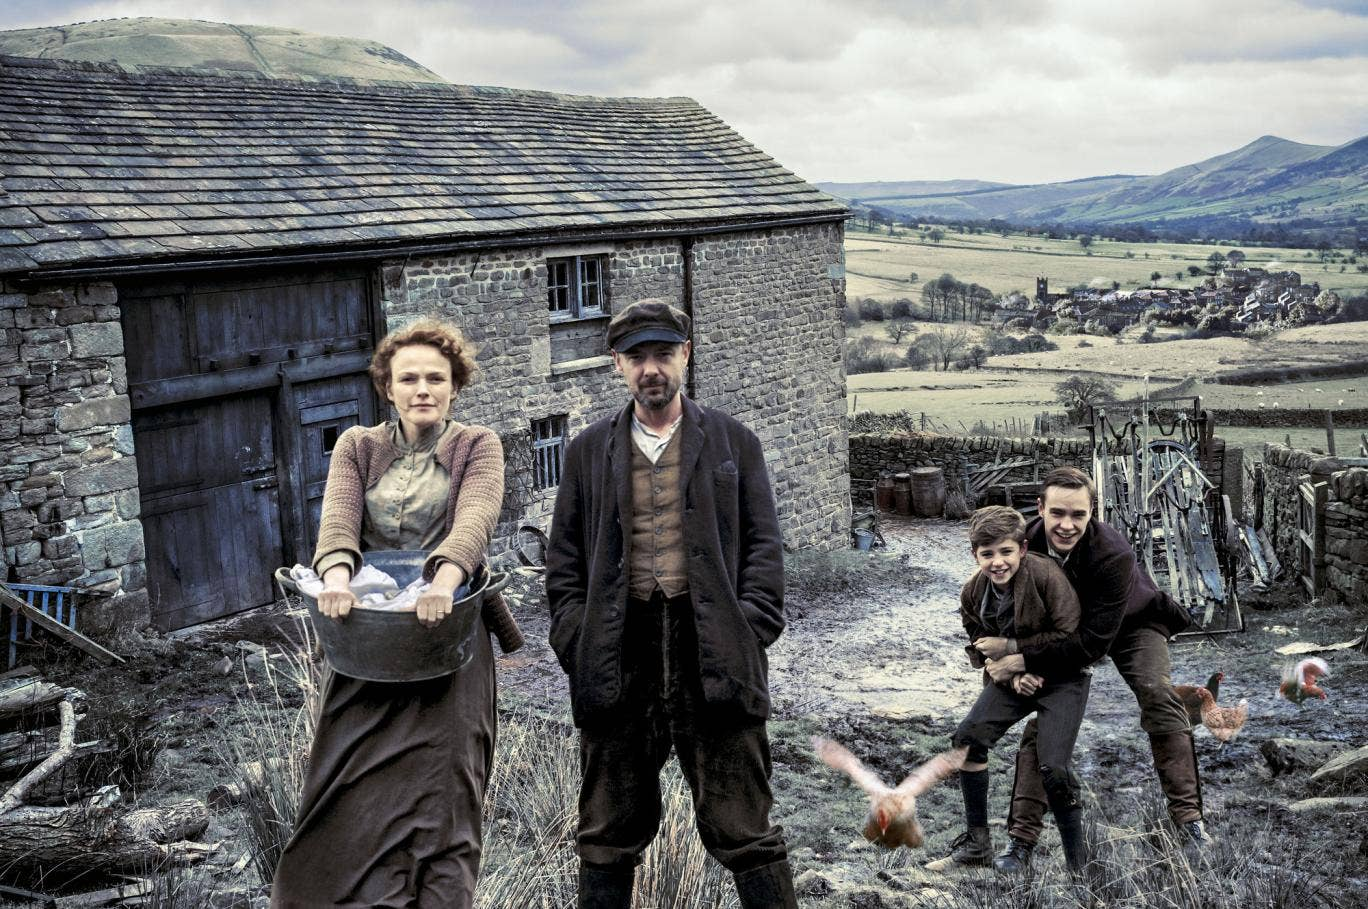 The Village: Grace (MAXINE PEAKE), John (JOHN SIMM), Young Bert (BILL JONES), Joe (NICO MIRALLEGRO)